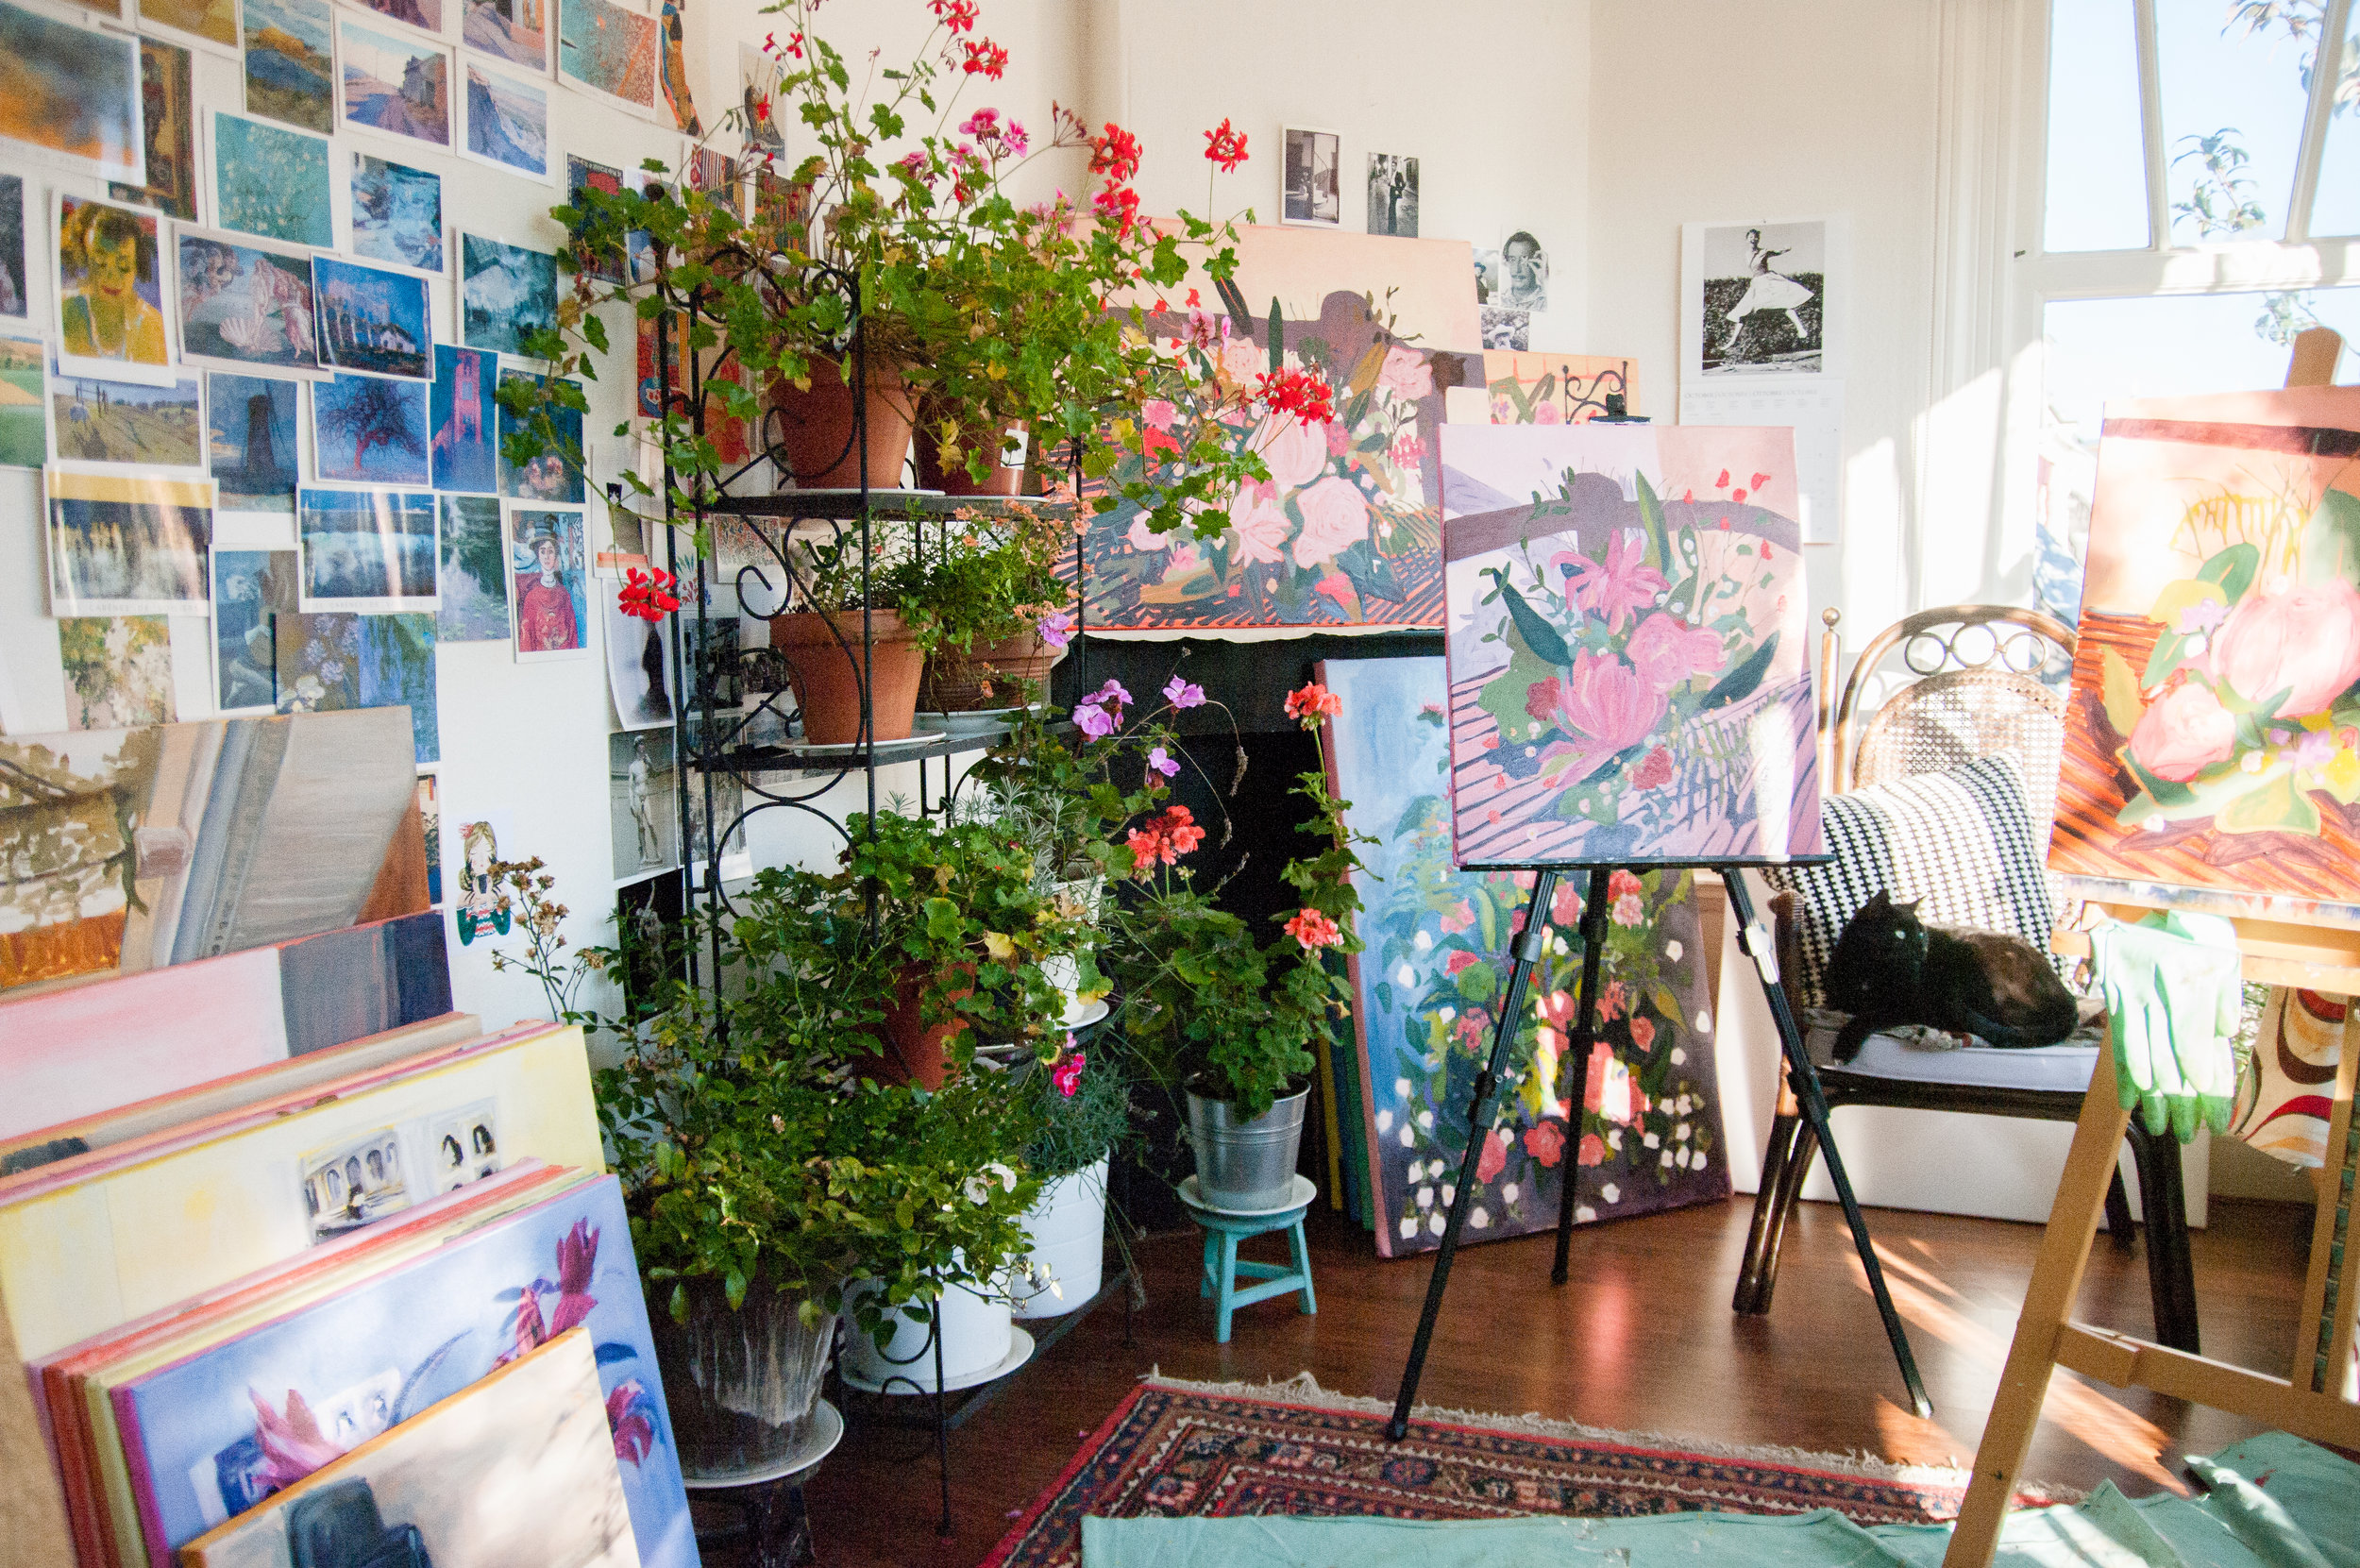 Morgan's lovely studio in her Utrecht apartment